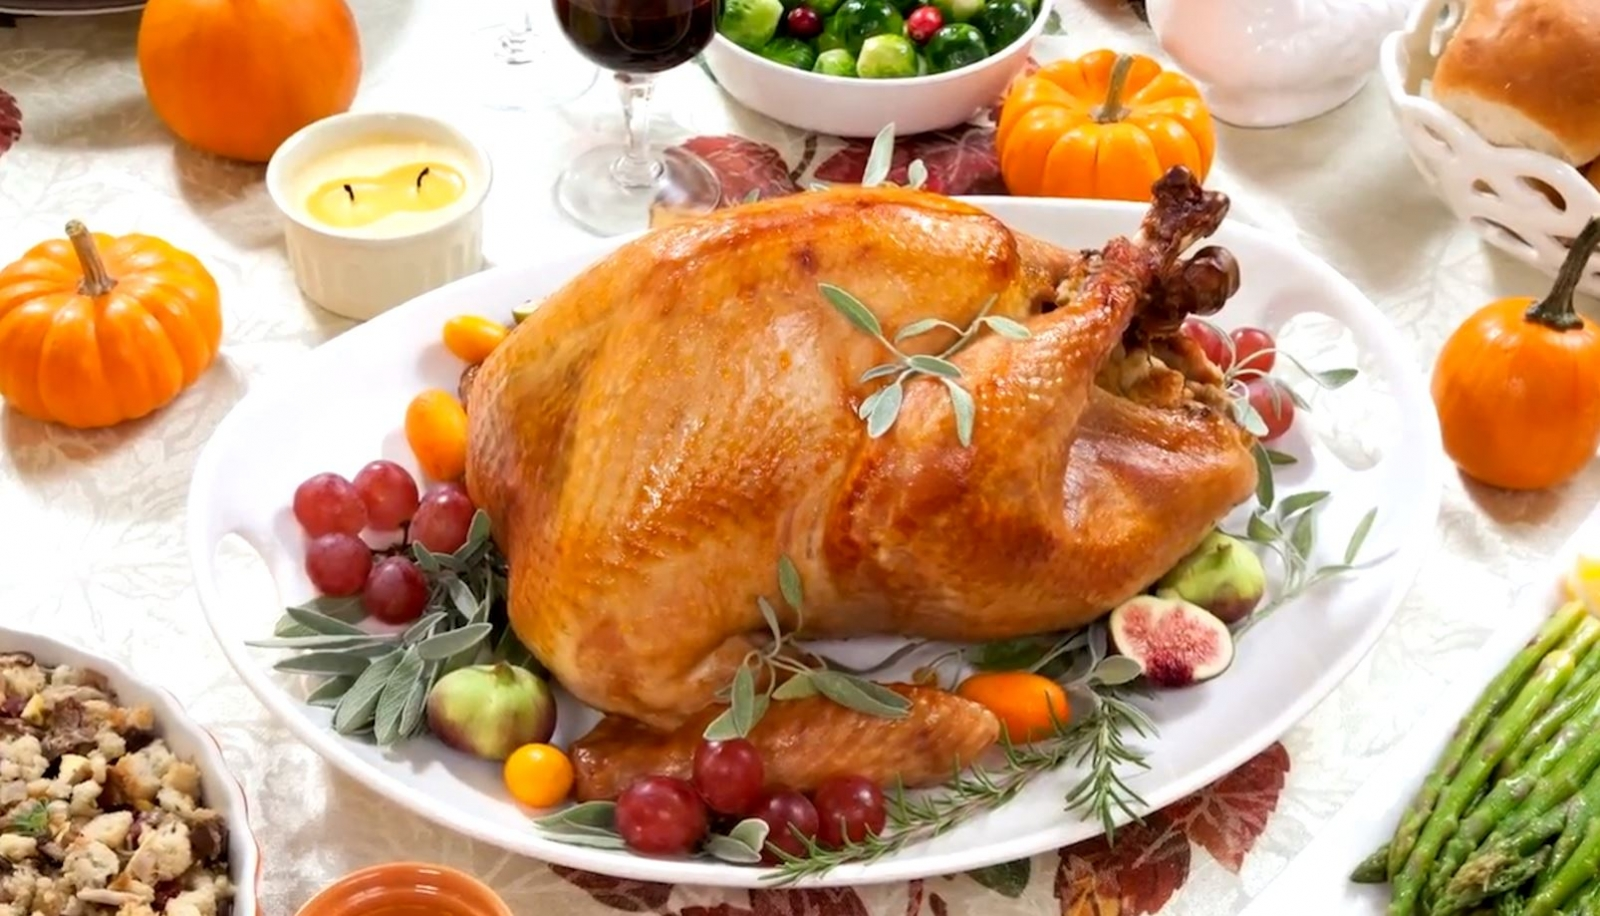 Thanksgiving 2014: What Happens When You Eat Too Much Turkey?